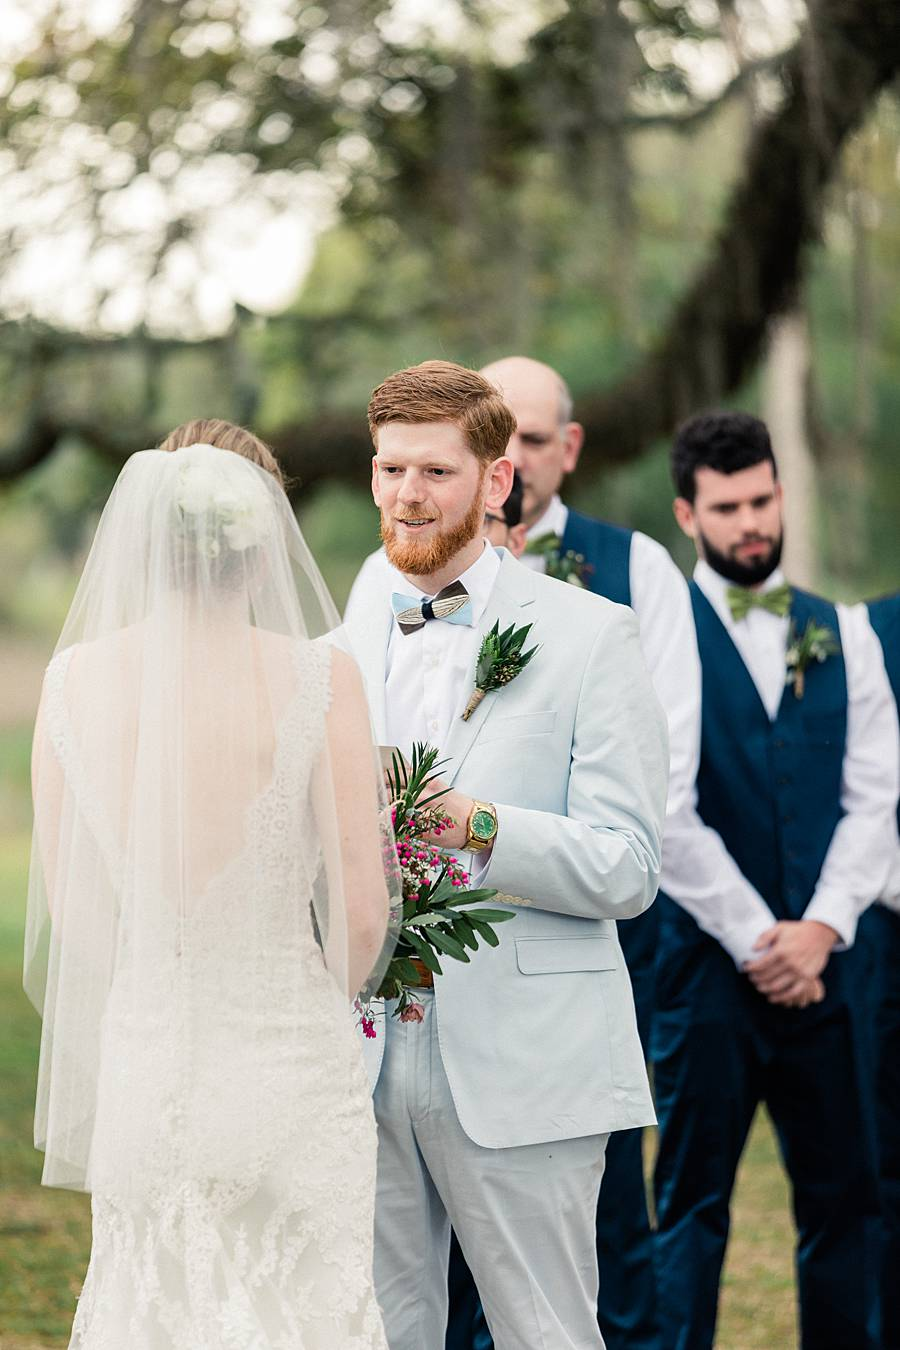 charleston cypress trees april wedding 240_web